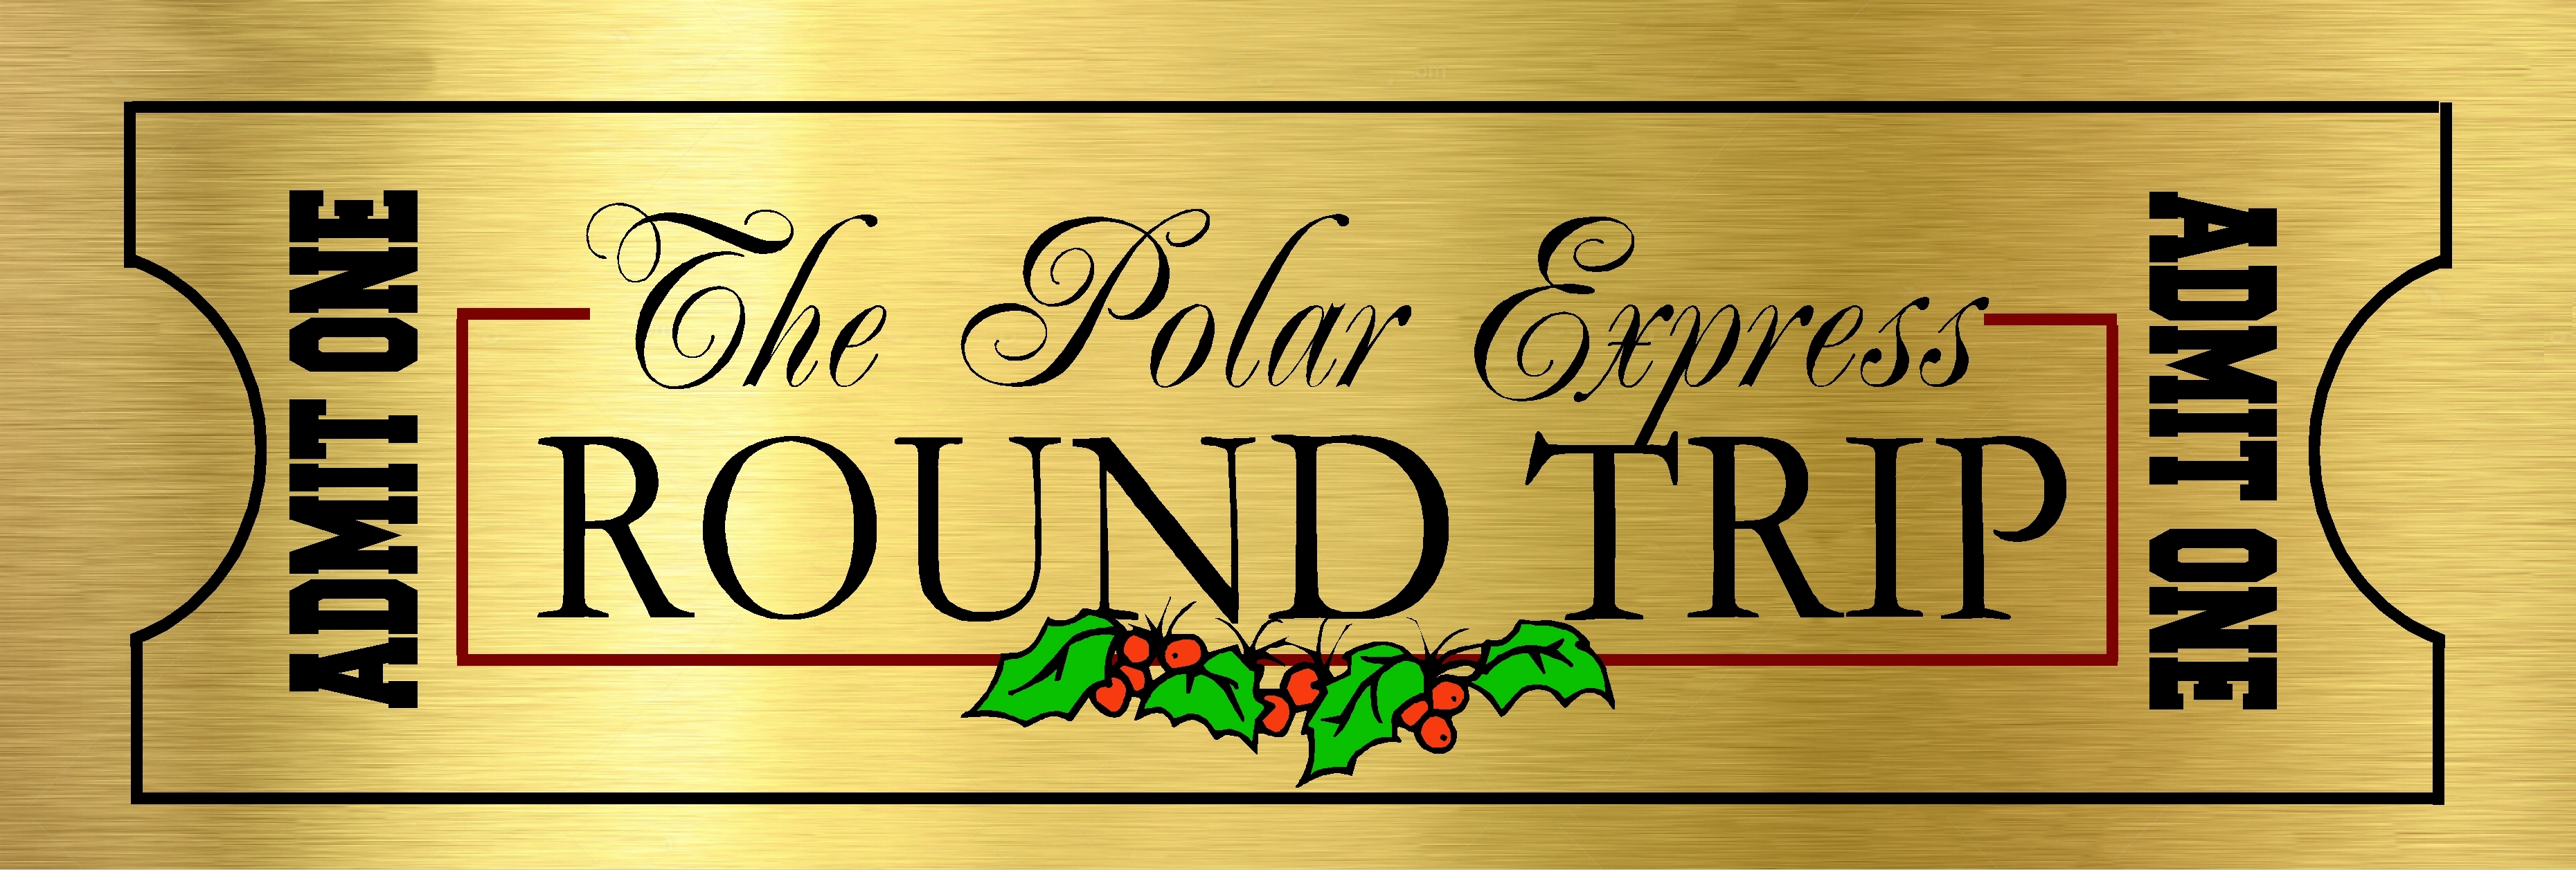 image relating to Polar Express Ticket Printable titled Polar Convey Ticket The Notion Doorway